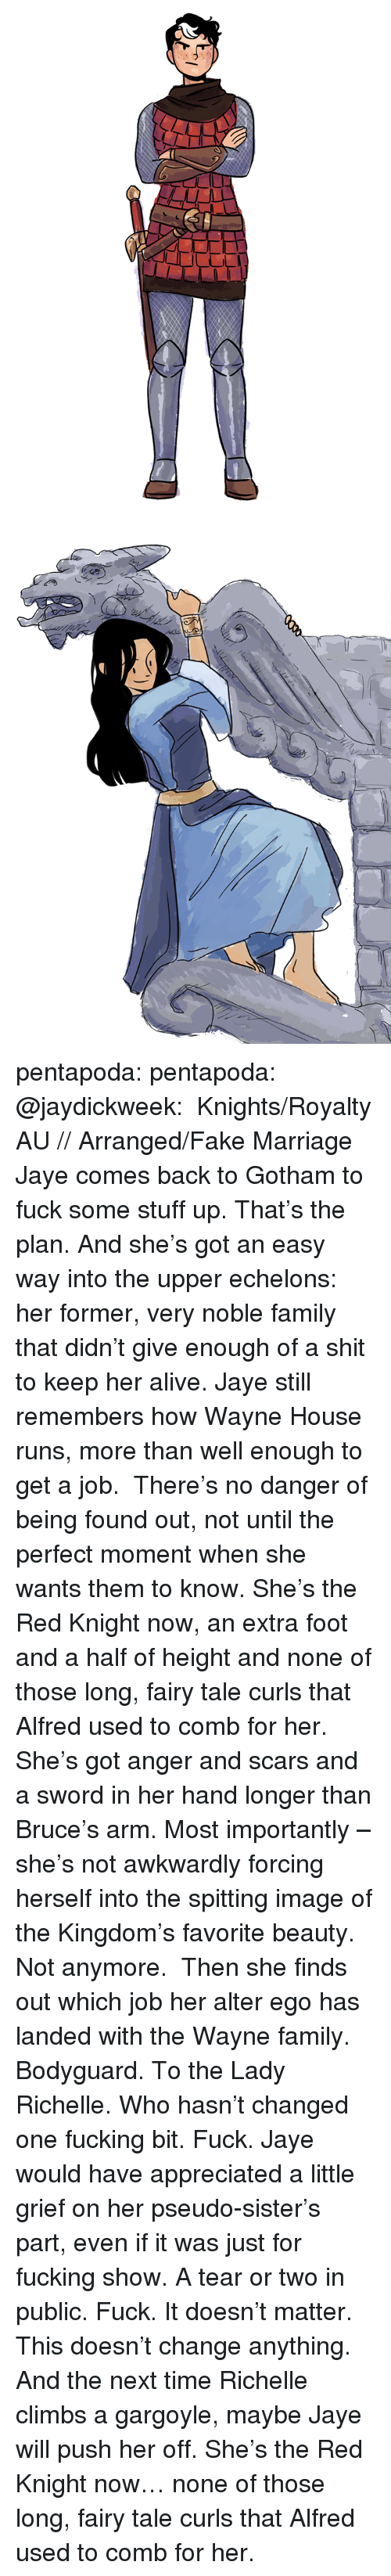 Alive, Fake, and Family: pentapoda:  pentapoda:  @jaydickweek:   Knights/Royalty AU // Arranged/Fake Marriage  Jaye comes back to Gotham to fuck some stuff up. That's the plan. And she's got an easy way into the upper echelons: her former, very noble family that didn't give enough of a shit to keep her alive. Jaye still remembers how Wayne House runs, more than well enough to get a job.  There's no danger of being found out, not until the perfect moment when she wants them to know. She's the Red Knight now, an extra foot and a half of height and none of those long, fairy tale curls that Alfred used to comb for her. She's got anger and scars and a sword in her hand longer than Bruce's arm. Most importantly – she's not awkwardly forcing herself into the spitting image of the Kingdom's favorite beauty. Not anymore.  Then she finds out which job her alter ego has landed with the Wayne family. Bodyguard. To the Lady Richelle. Who hasn't changed one fucking bit. Fuck. Jaye would have appreciated a little grief on her pseudo-sister's part, even if it was just for fucking show. A tear or two in public. Fuck. It doesn't matter. This doesn't change anything. And the next time Richelle climbs a gargoyle, maybe Jaye will push her off.     She's the Red Knight now… none of those long, fairy tale curls that Alfred used to comb for her.